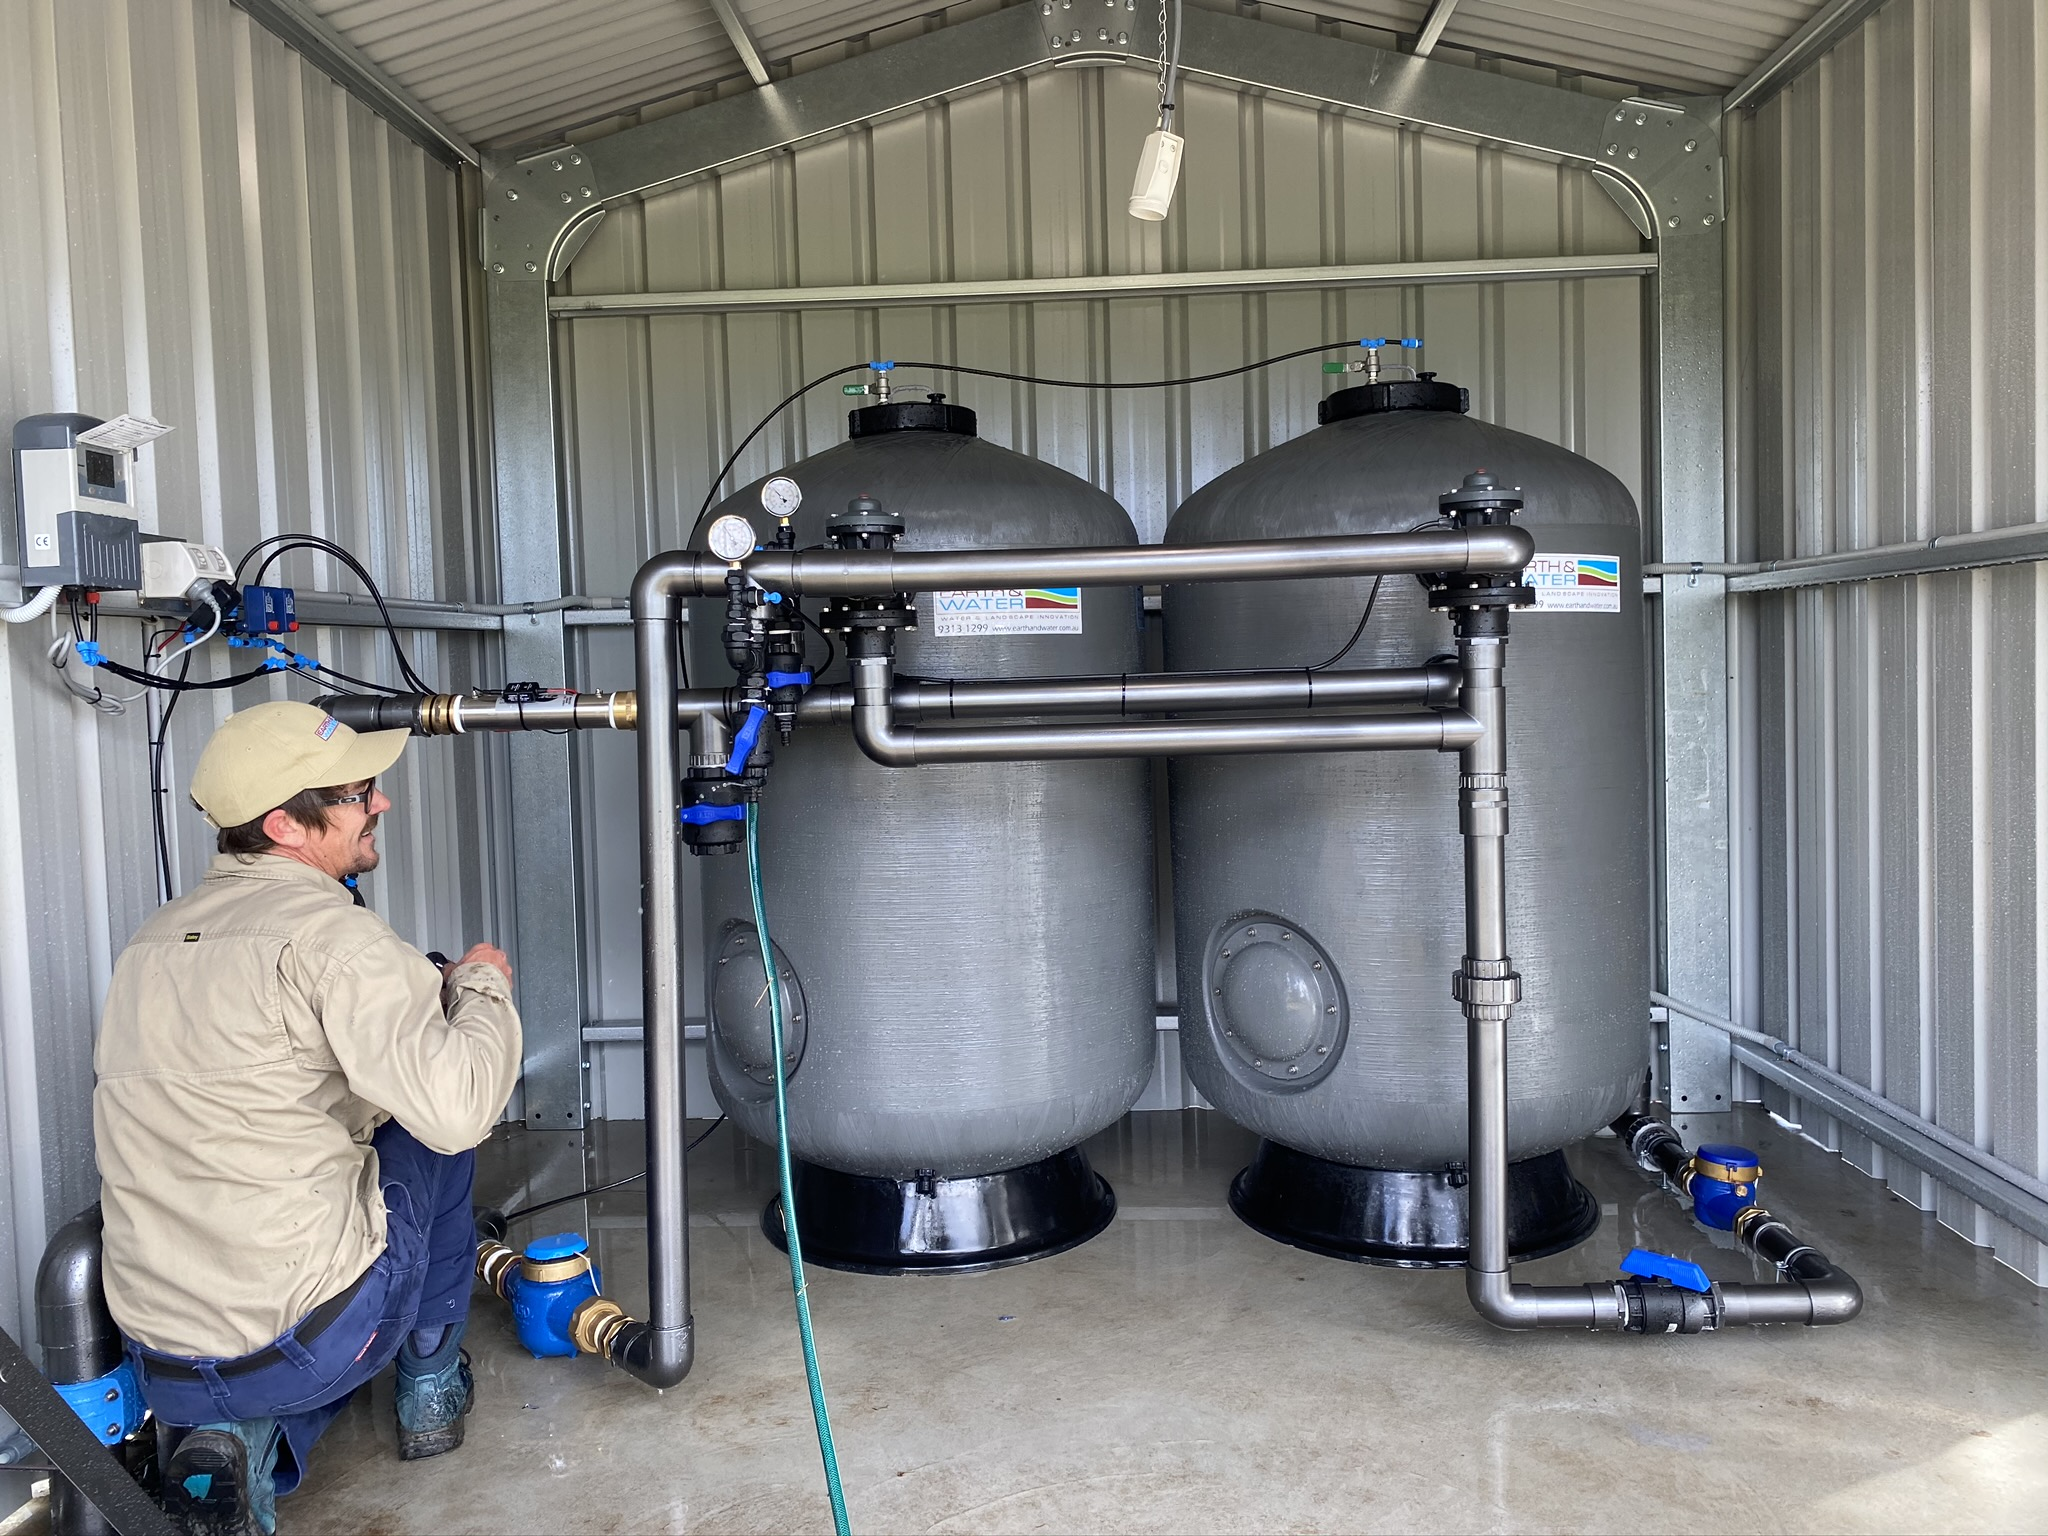 Bore water Treatment at Joondalup Primary School